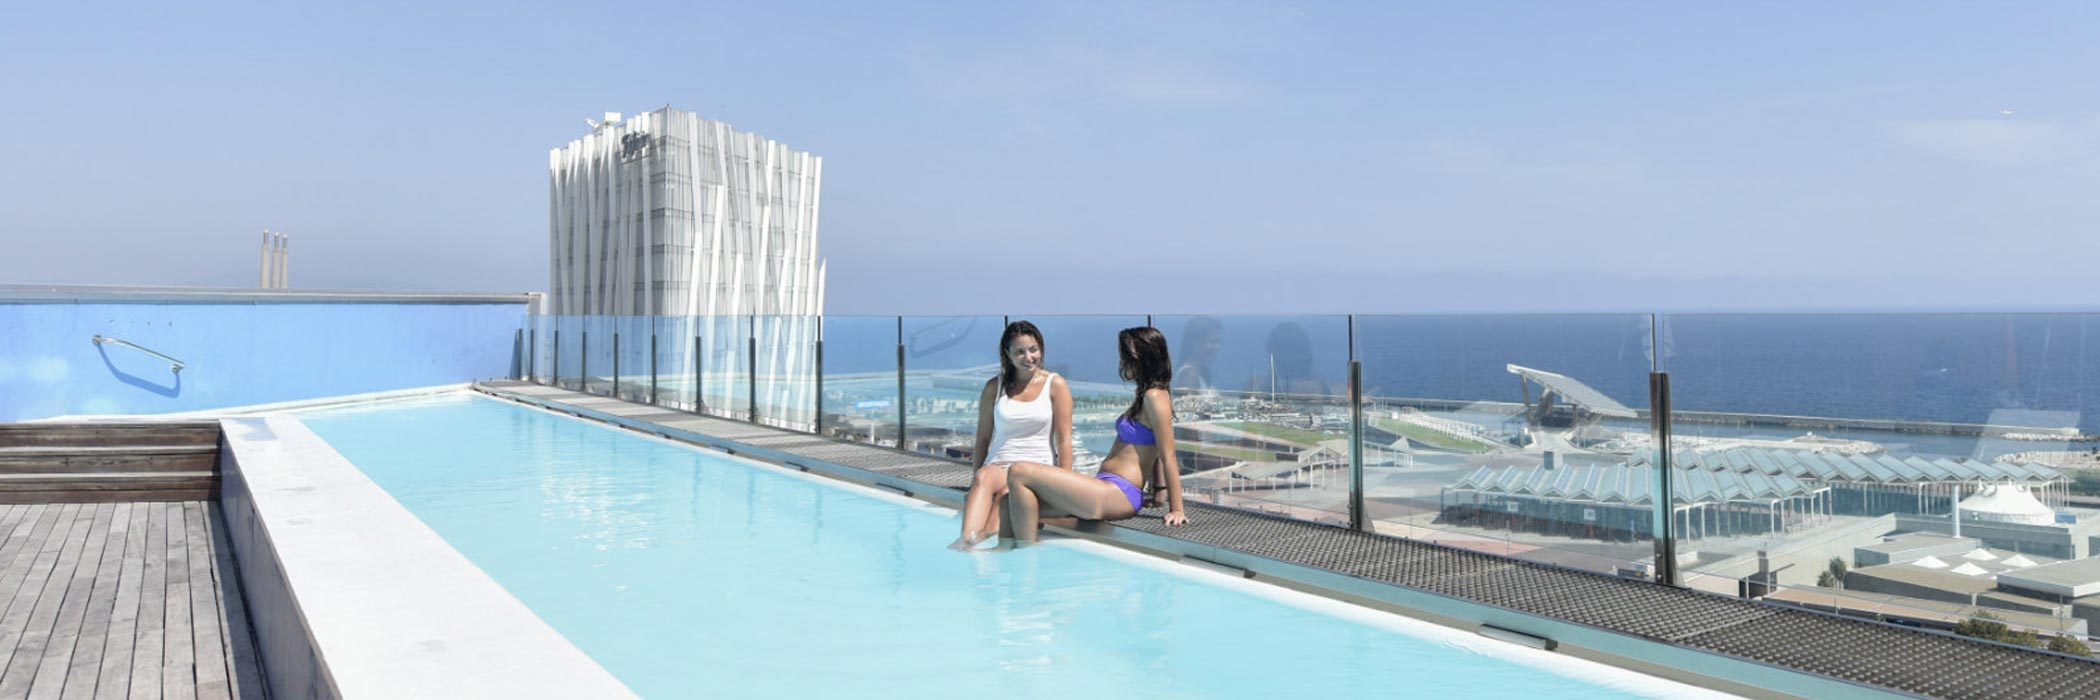 Barcelona Princess Hotel Rooftop Pool